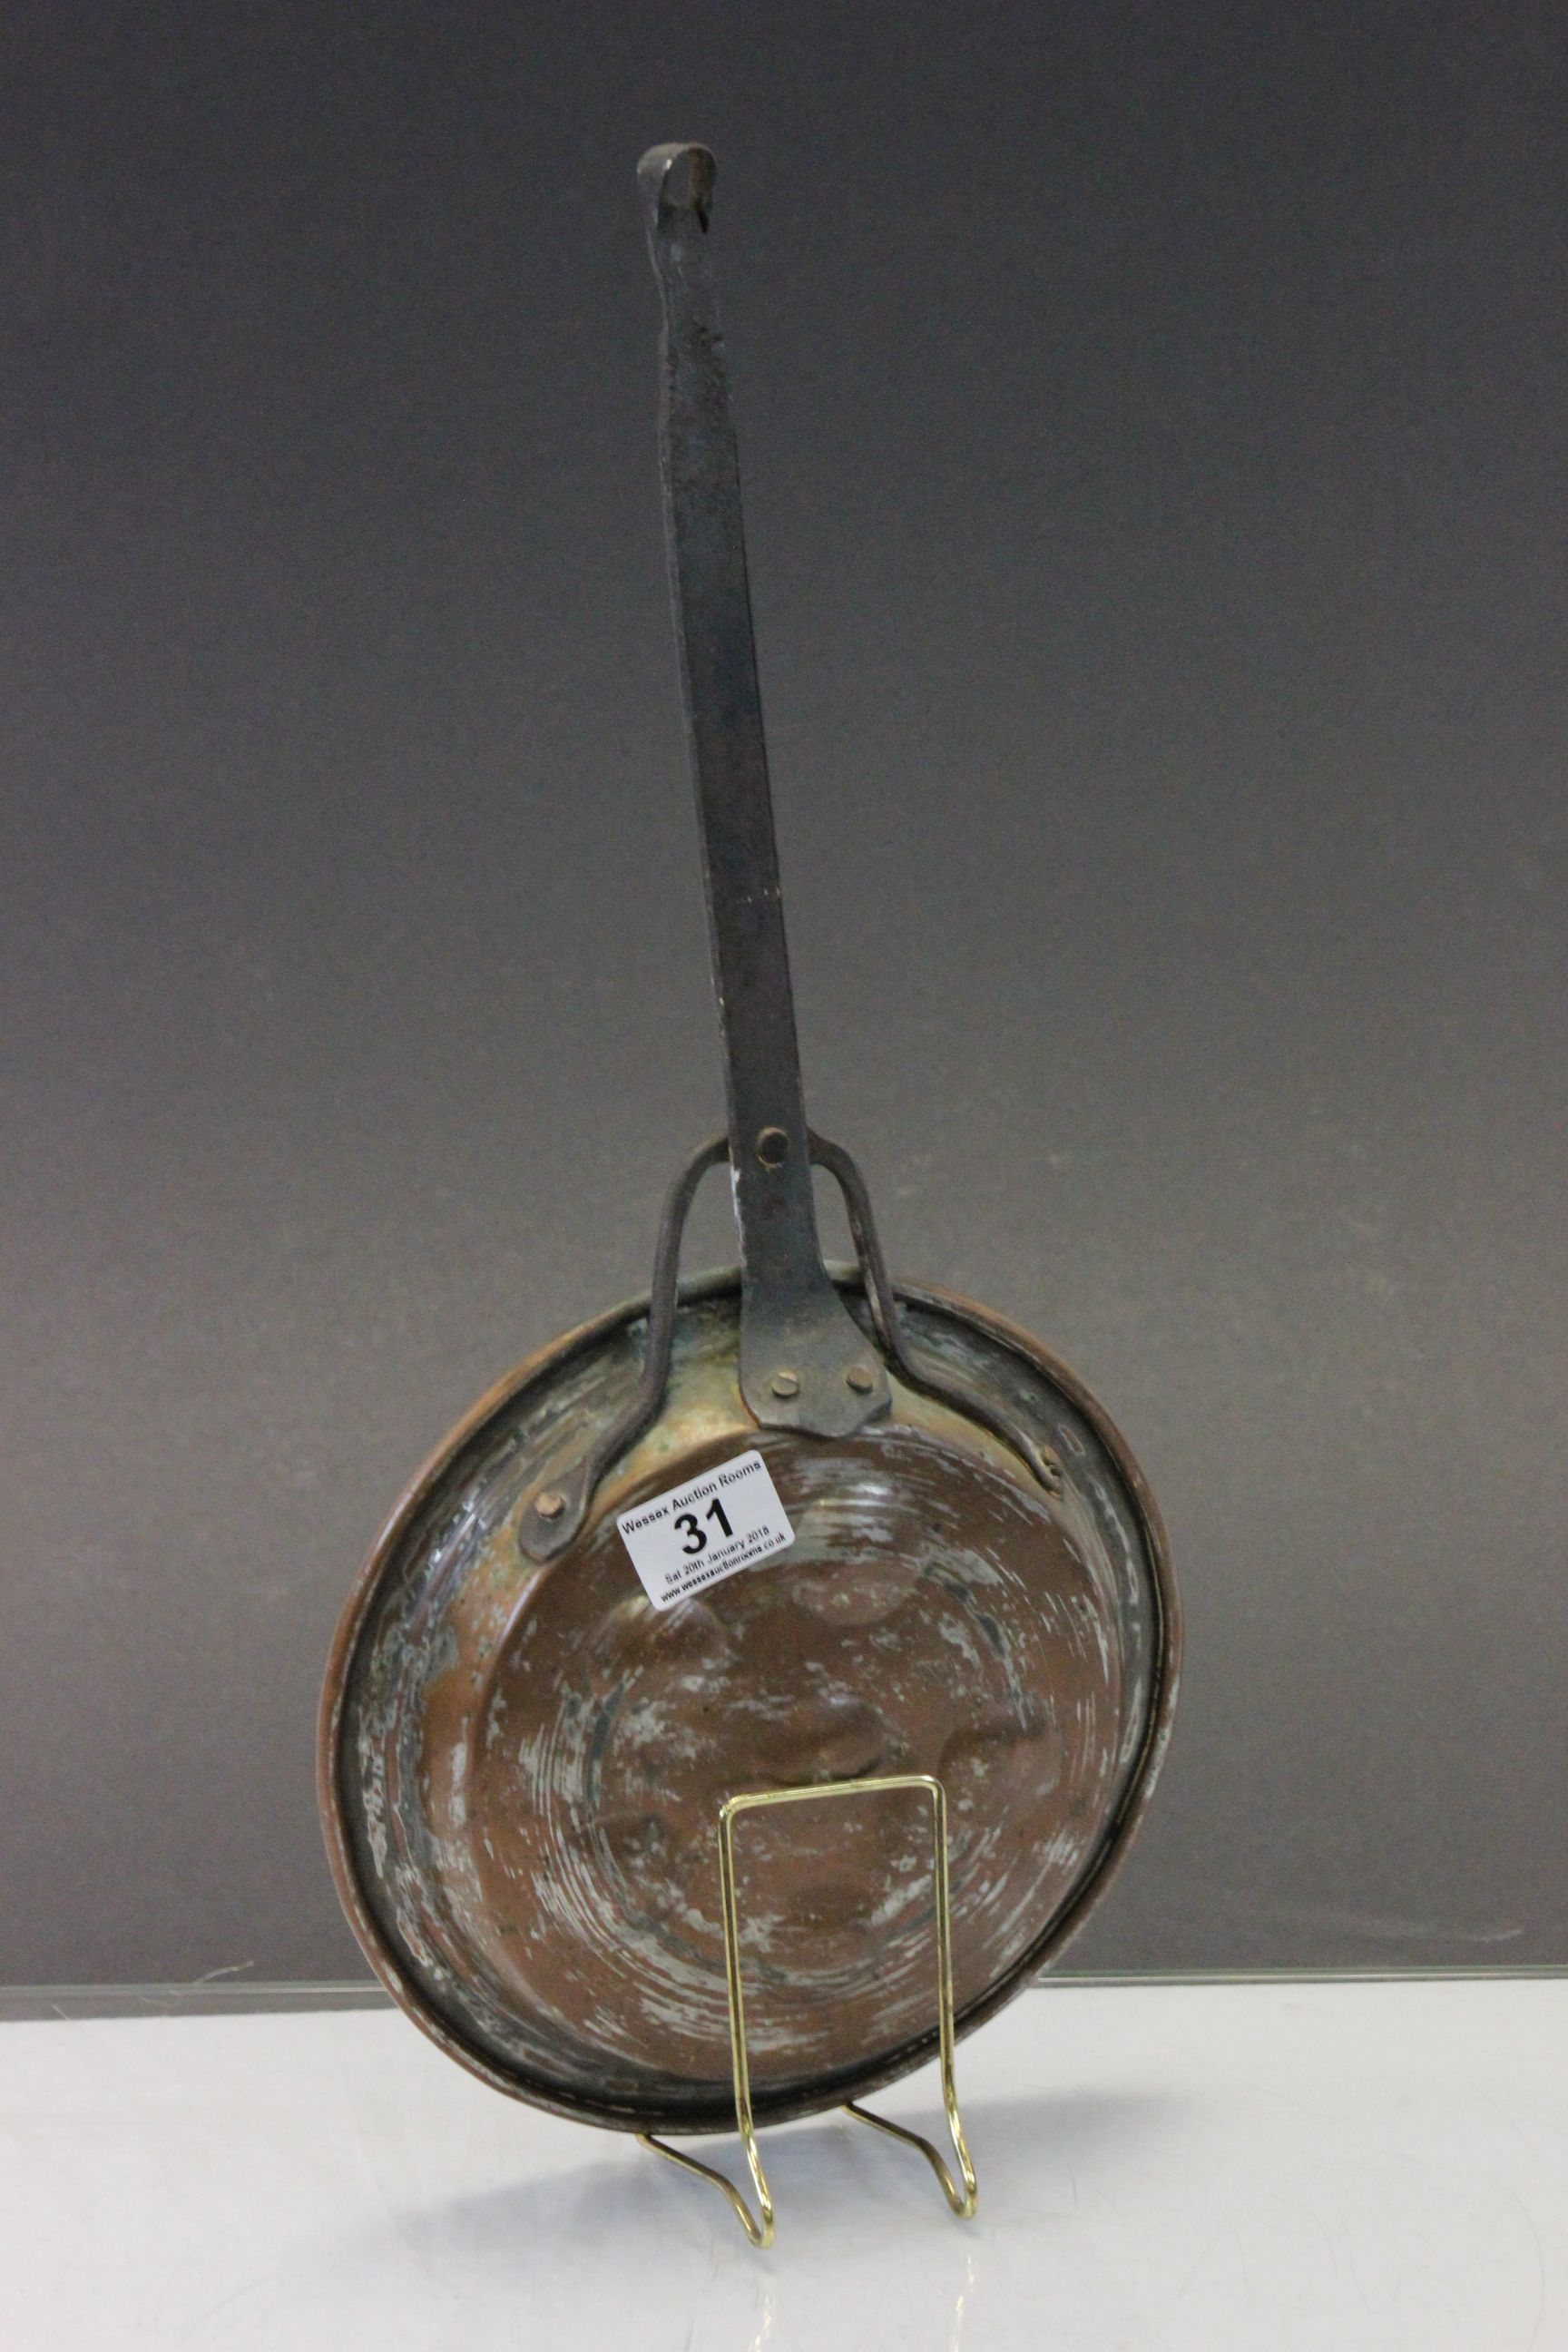 Lot 31 - Copper Escargot Pan with Iron Hanging handle